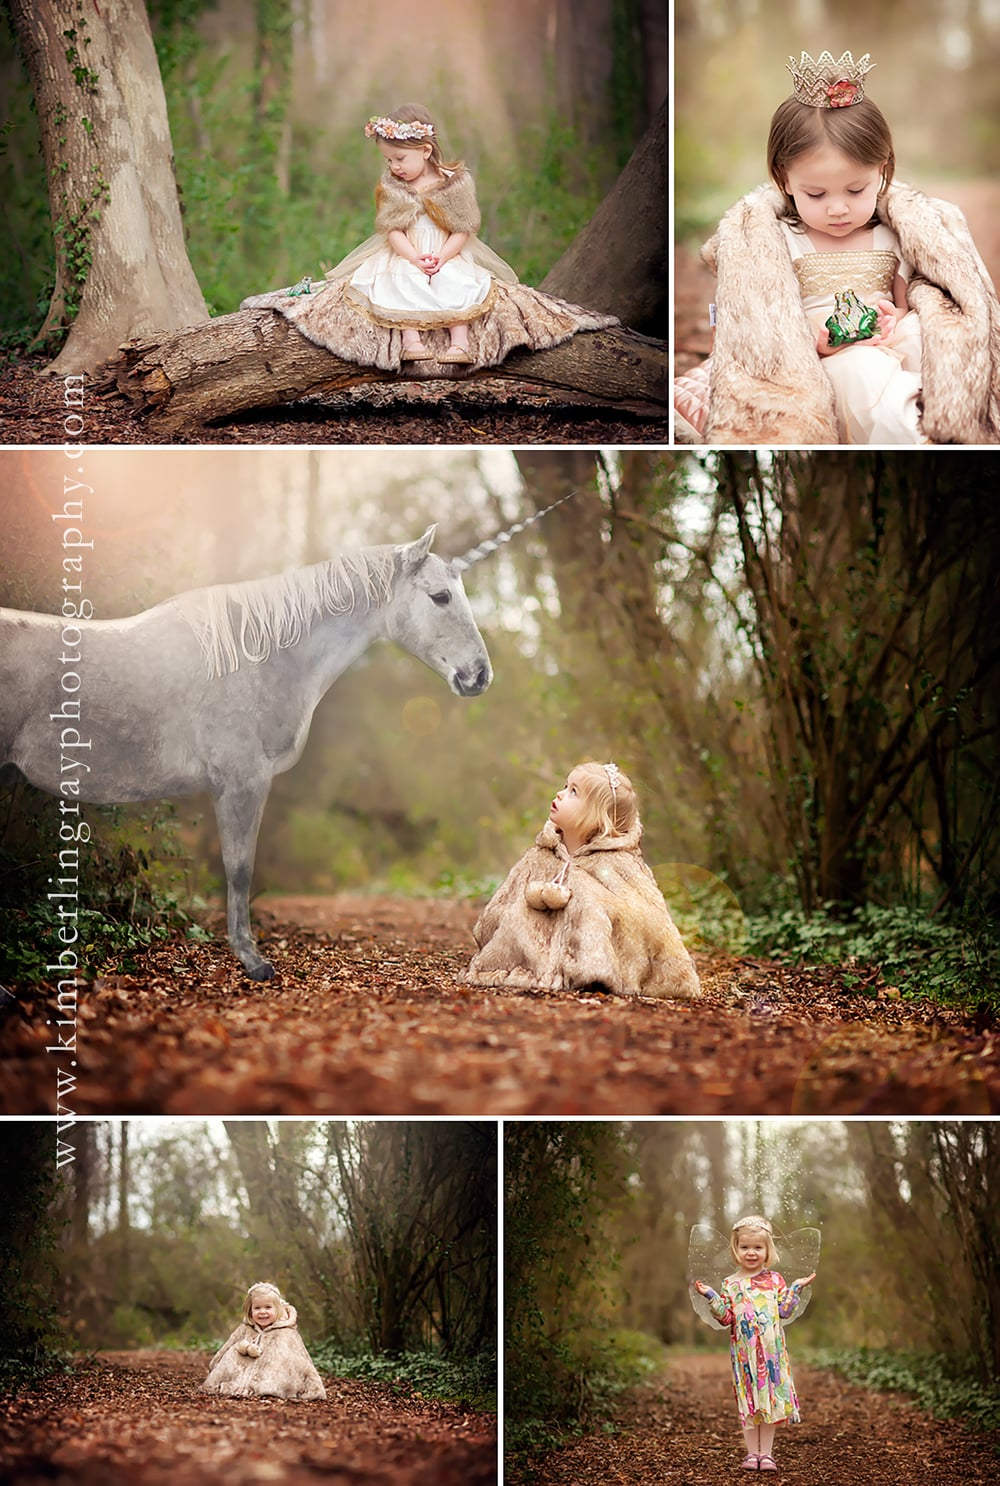 Fairy Tale Creative Minisessions | Artistry